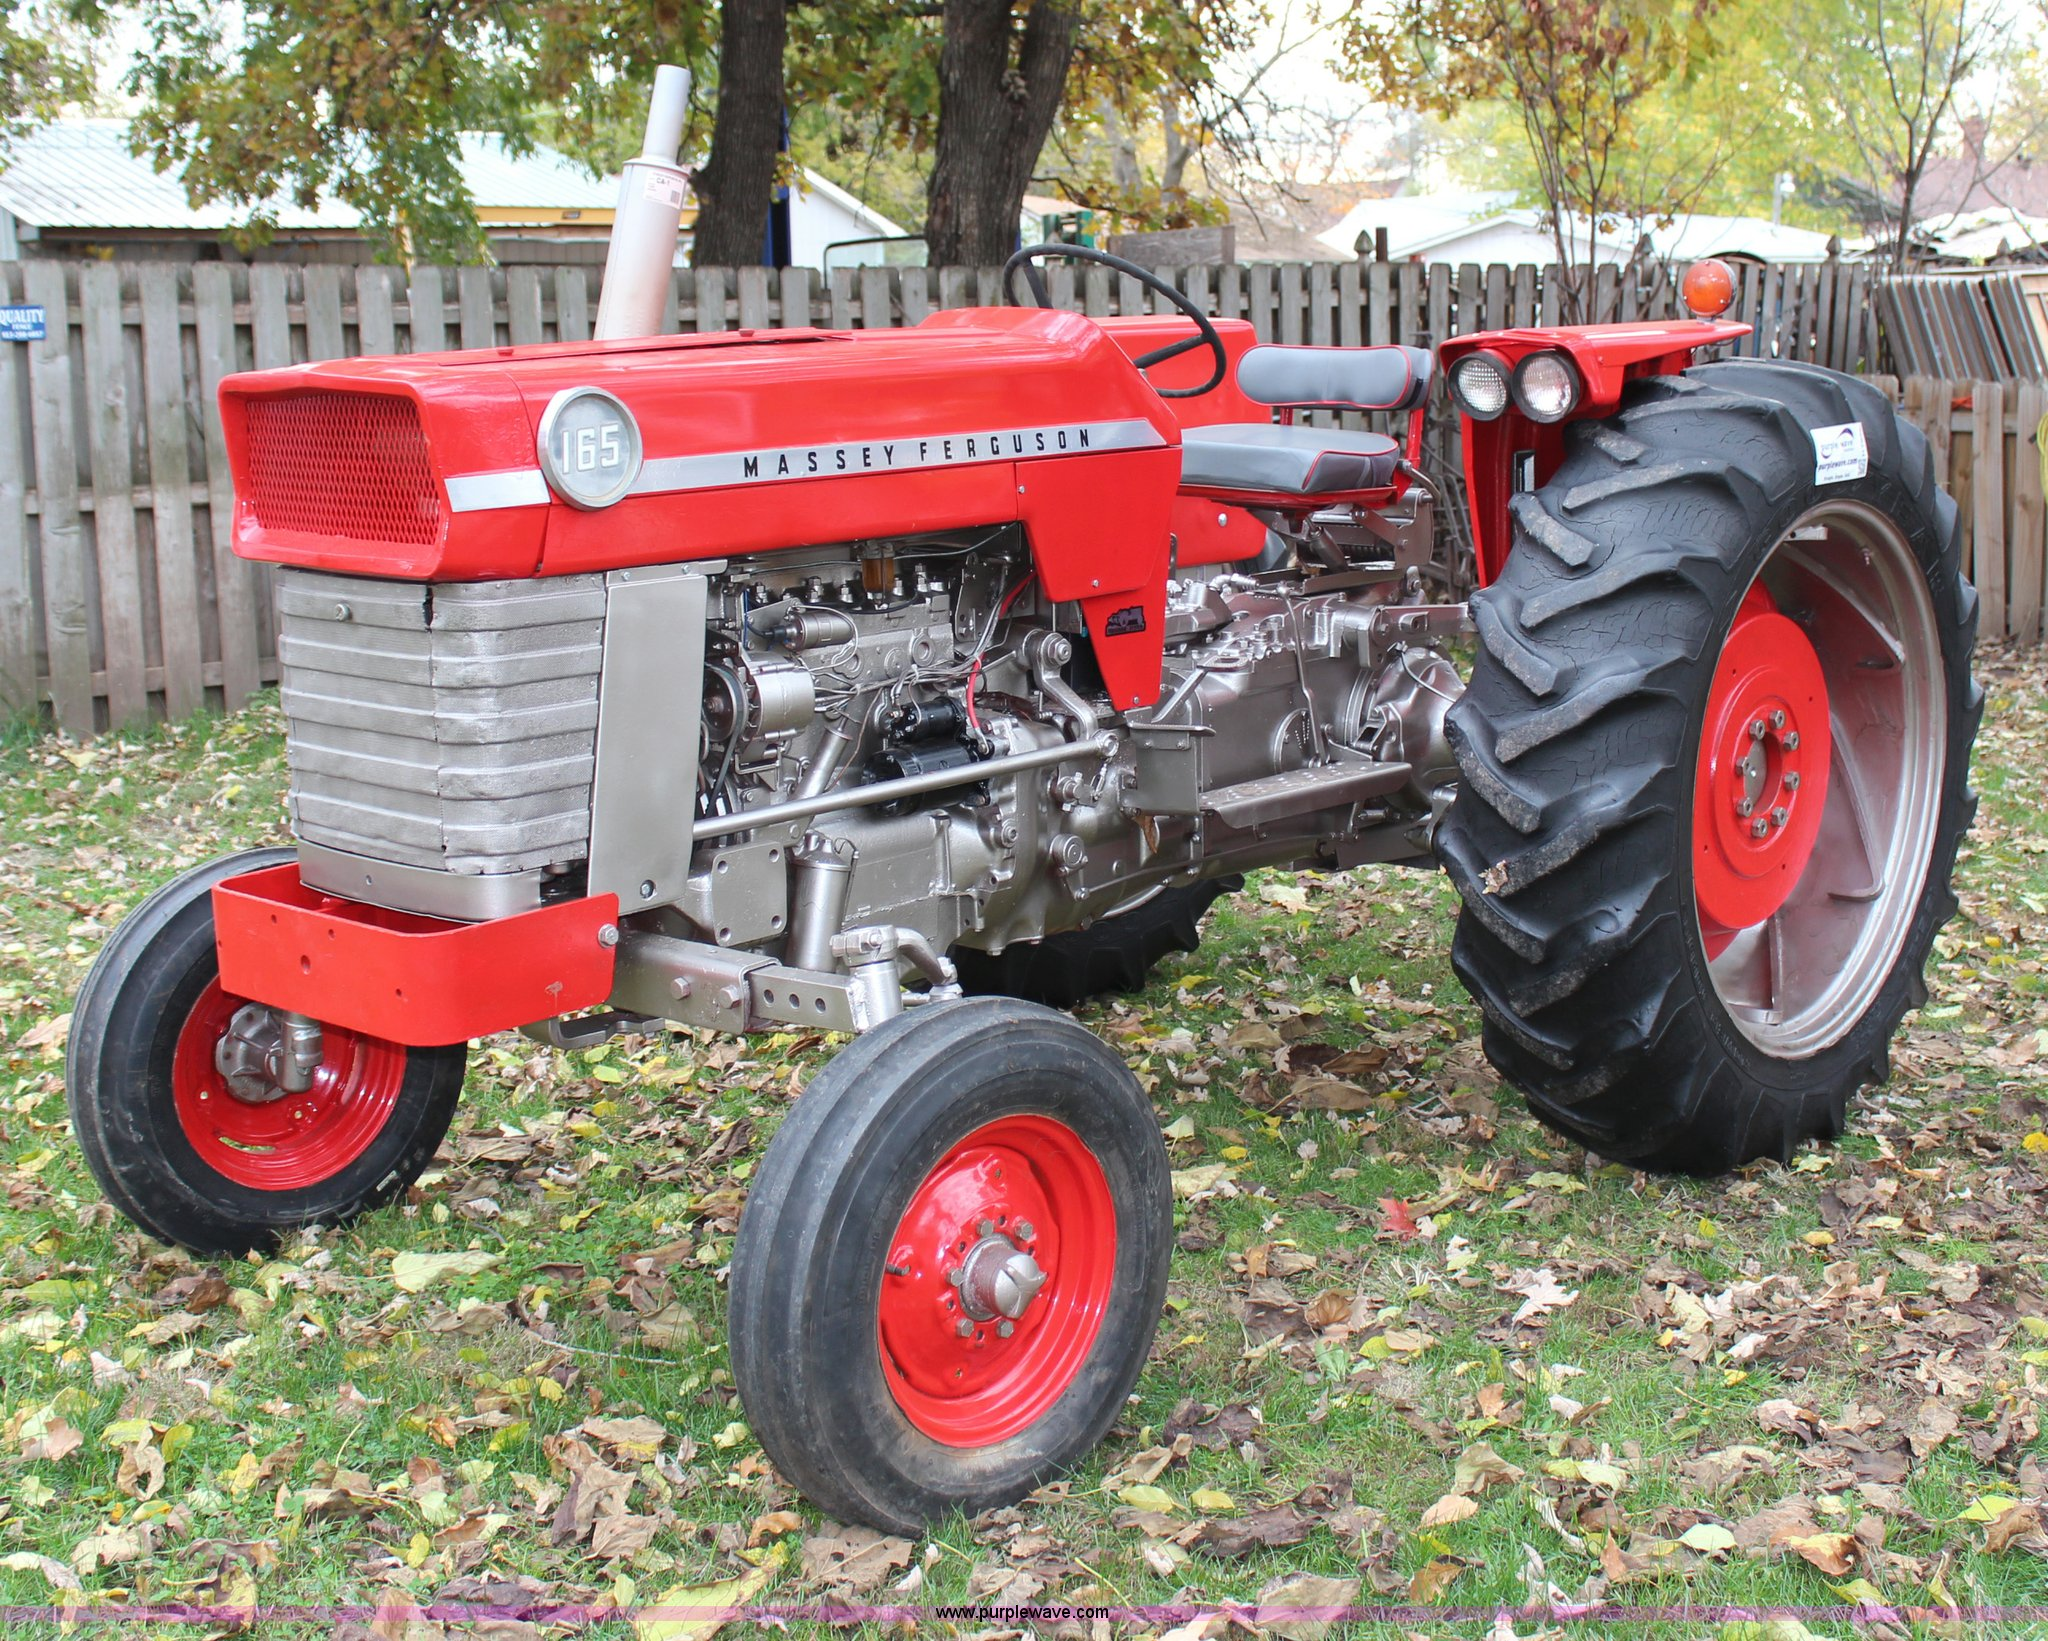 1970 massey ferguson 165 tractor item h7948 sold. Black Bedroom Furniture Sets. Home Design Ideas